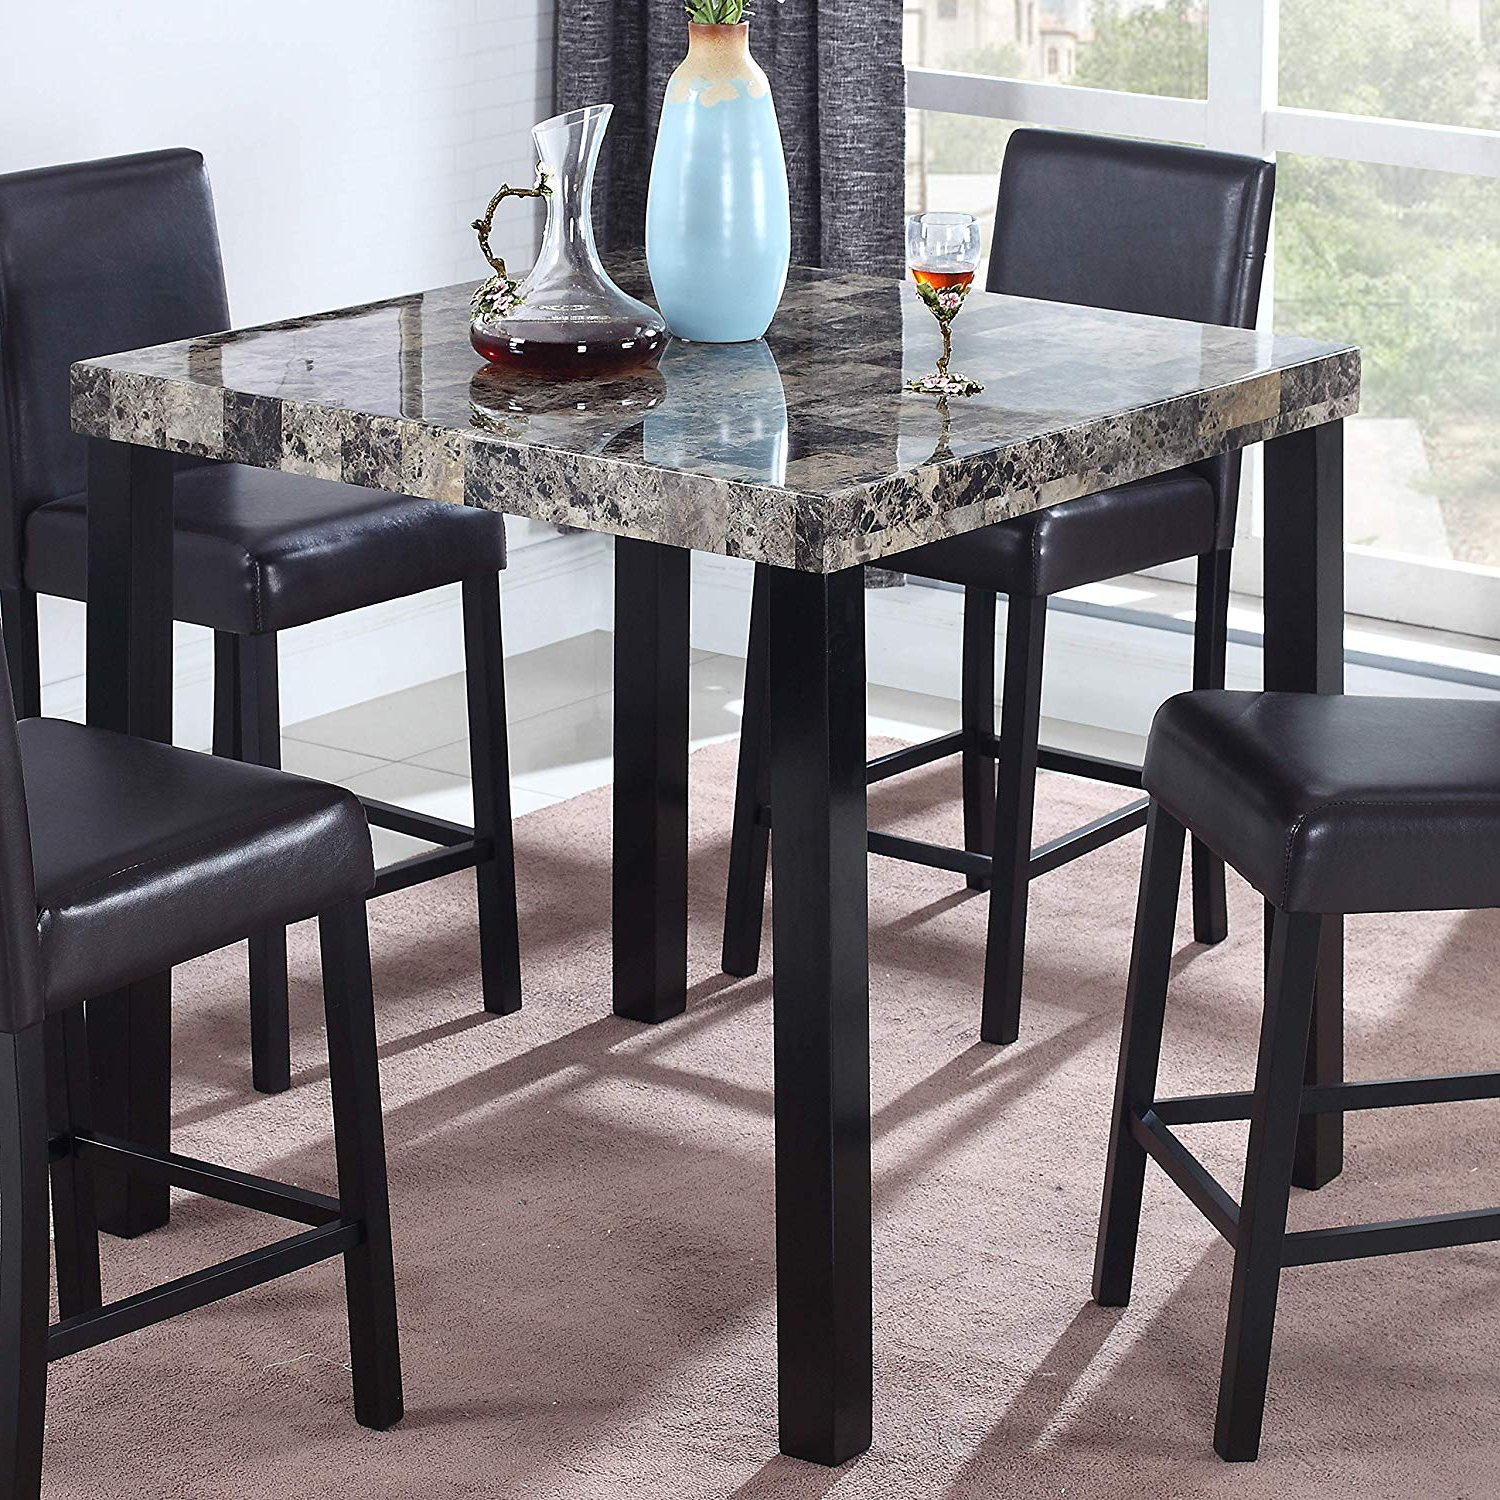 Best Master Furniture Britney Transitional Faux Marble Top Counter Table,  Espresso Finish For Popular Charcoal Transitional 6 Seating Rectangular Dining Tables (View 5 of 25)